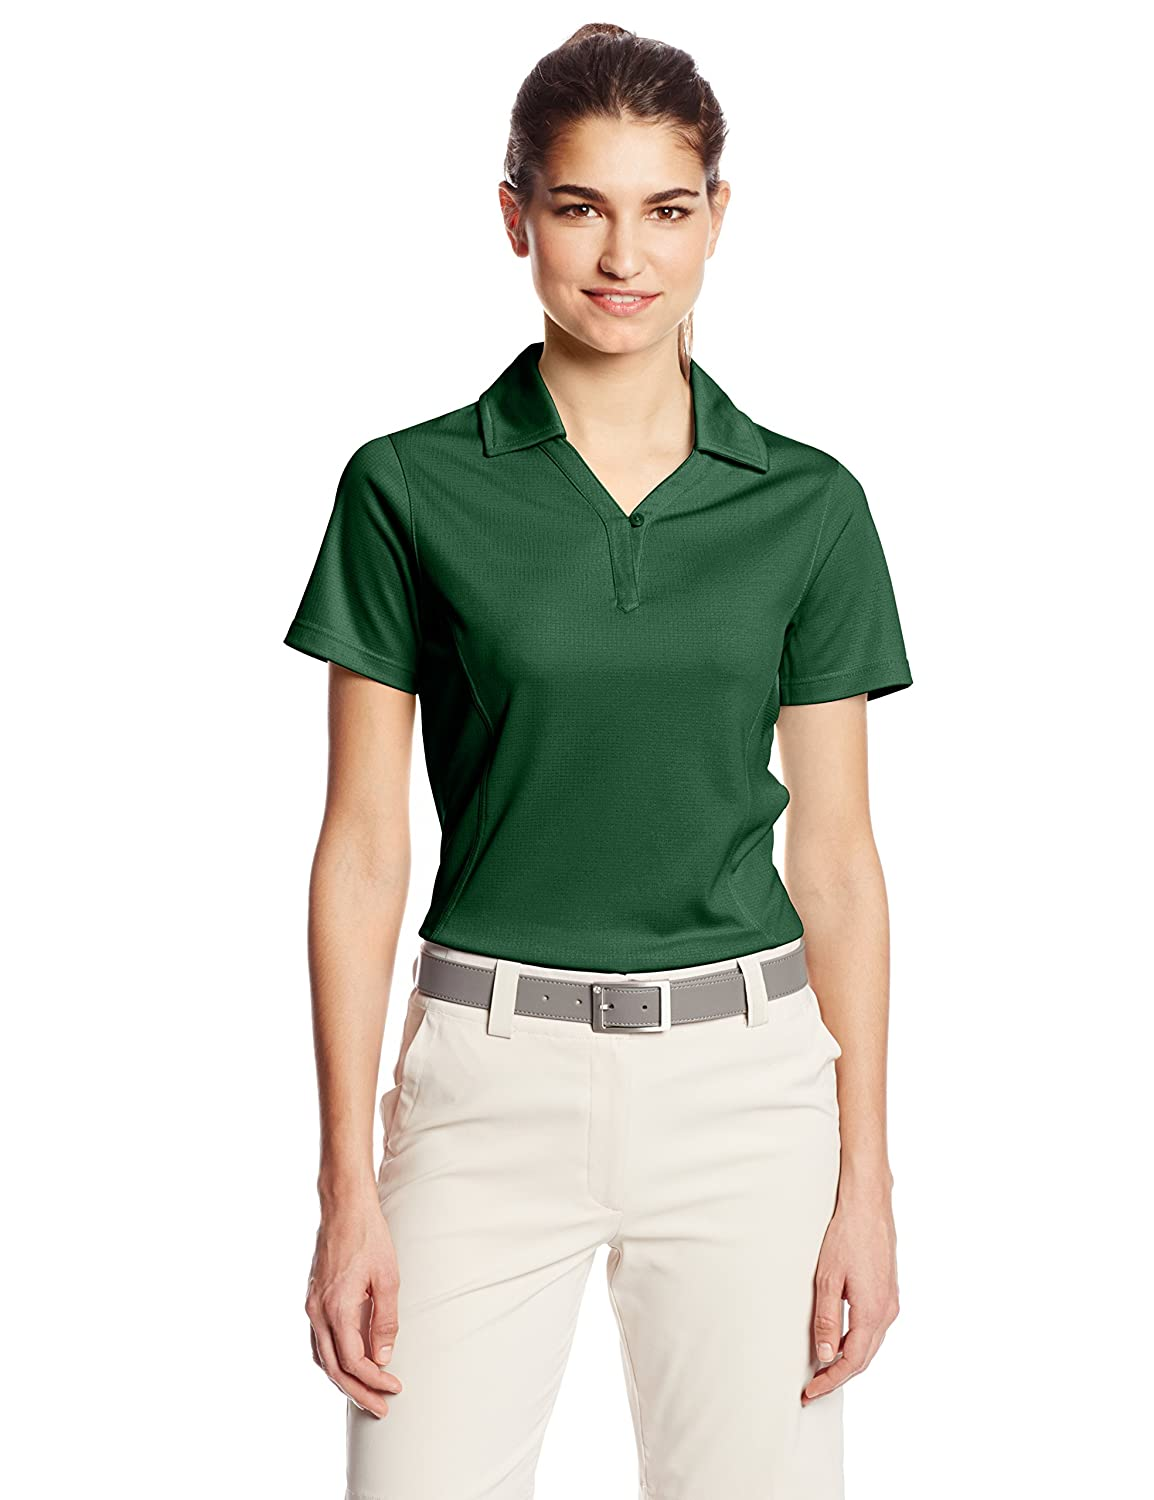 Cutter & Buck Women's Drytec Genre Short Sleeve Polo WCK02289